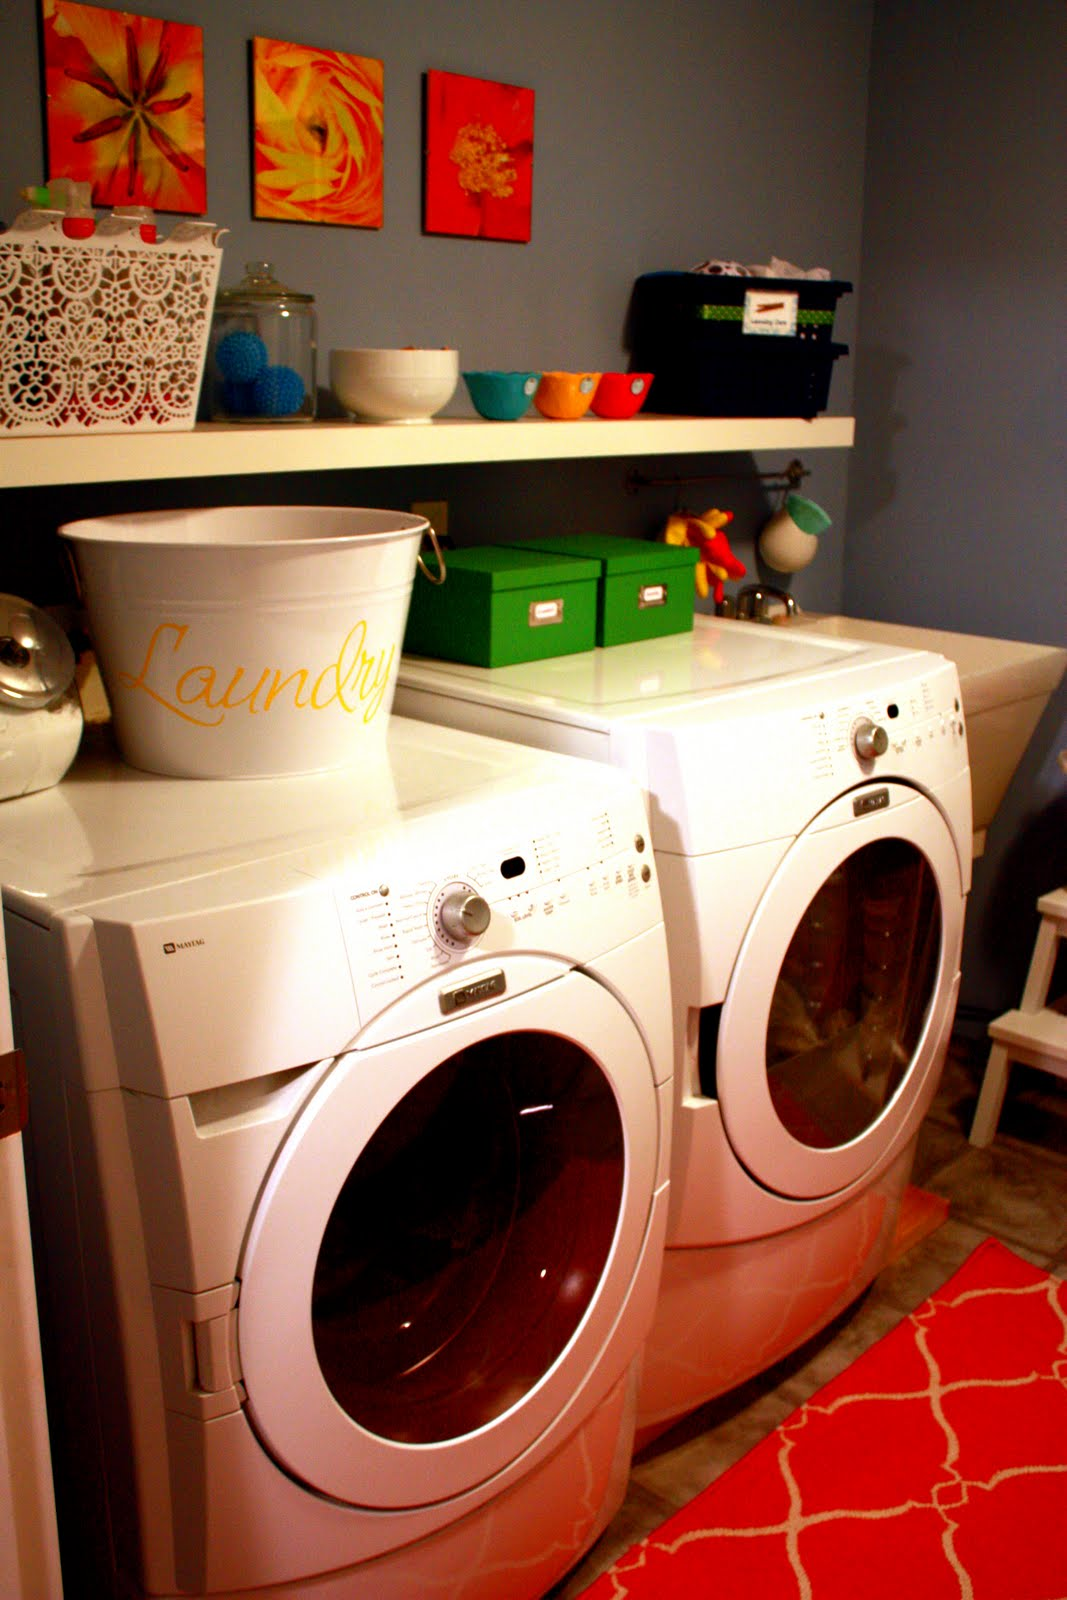 Laundry Room Shelving: IHeart Organizing: June Featured Space: Laundry Room